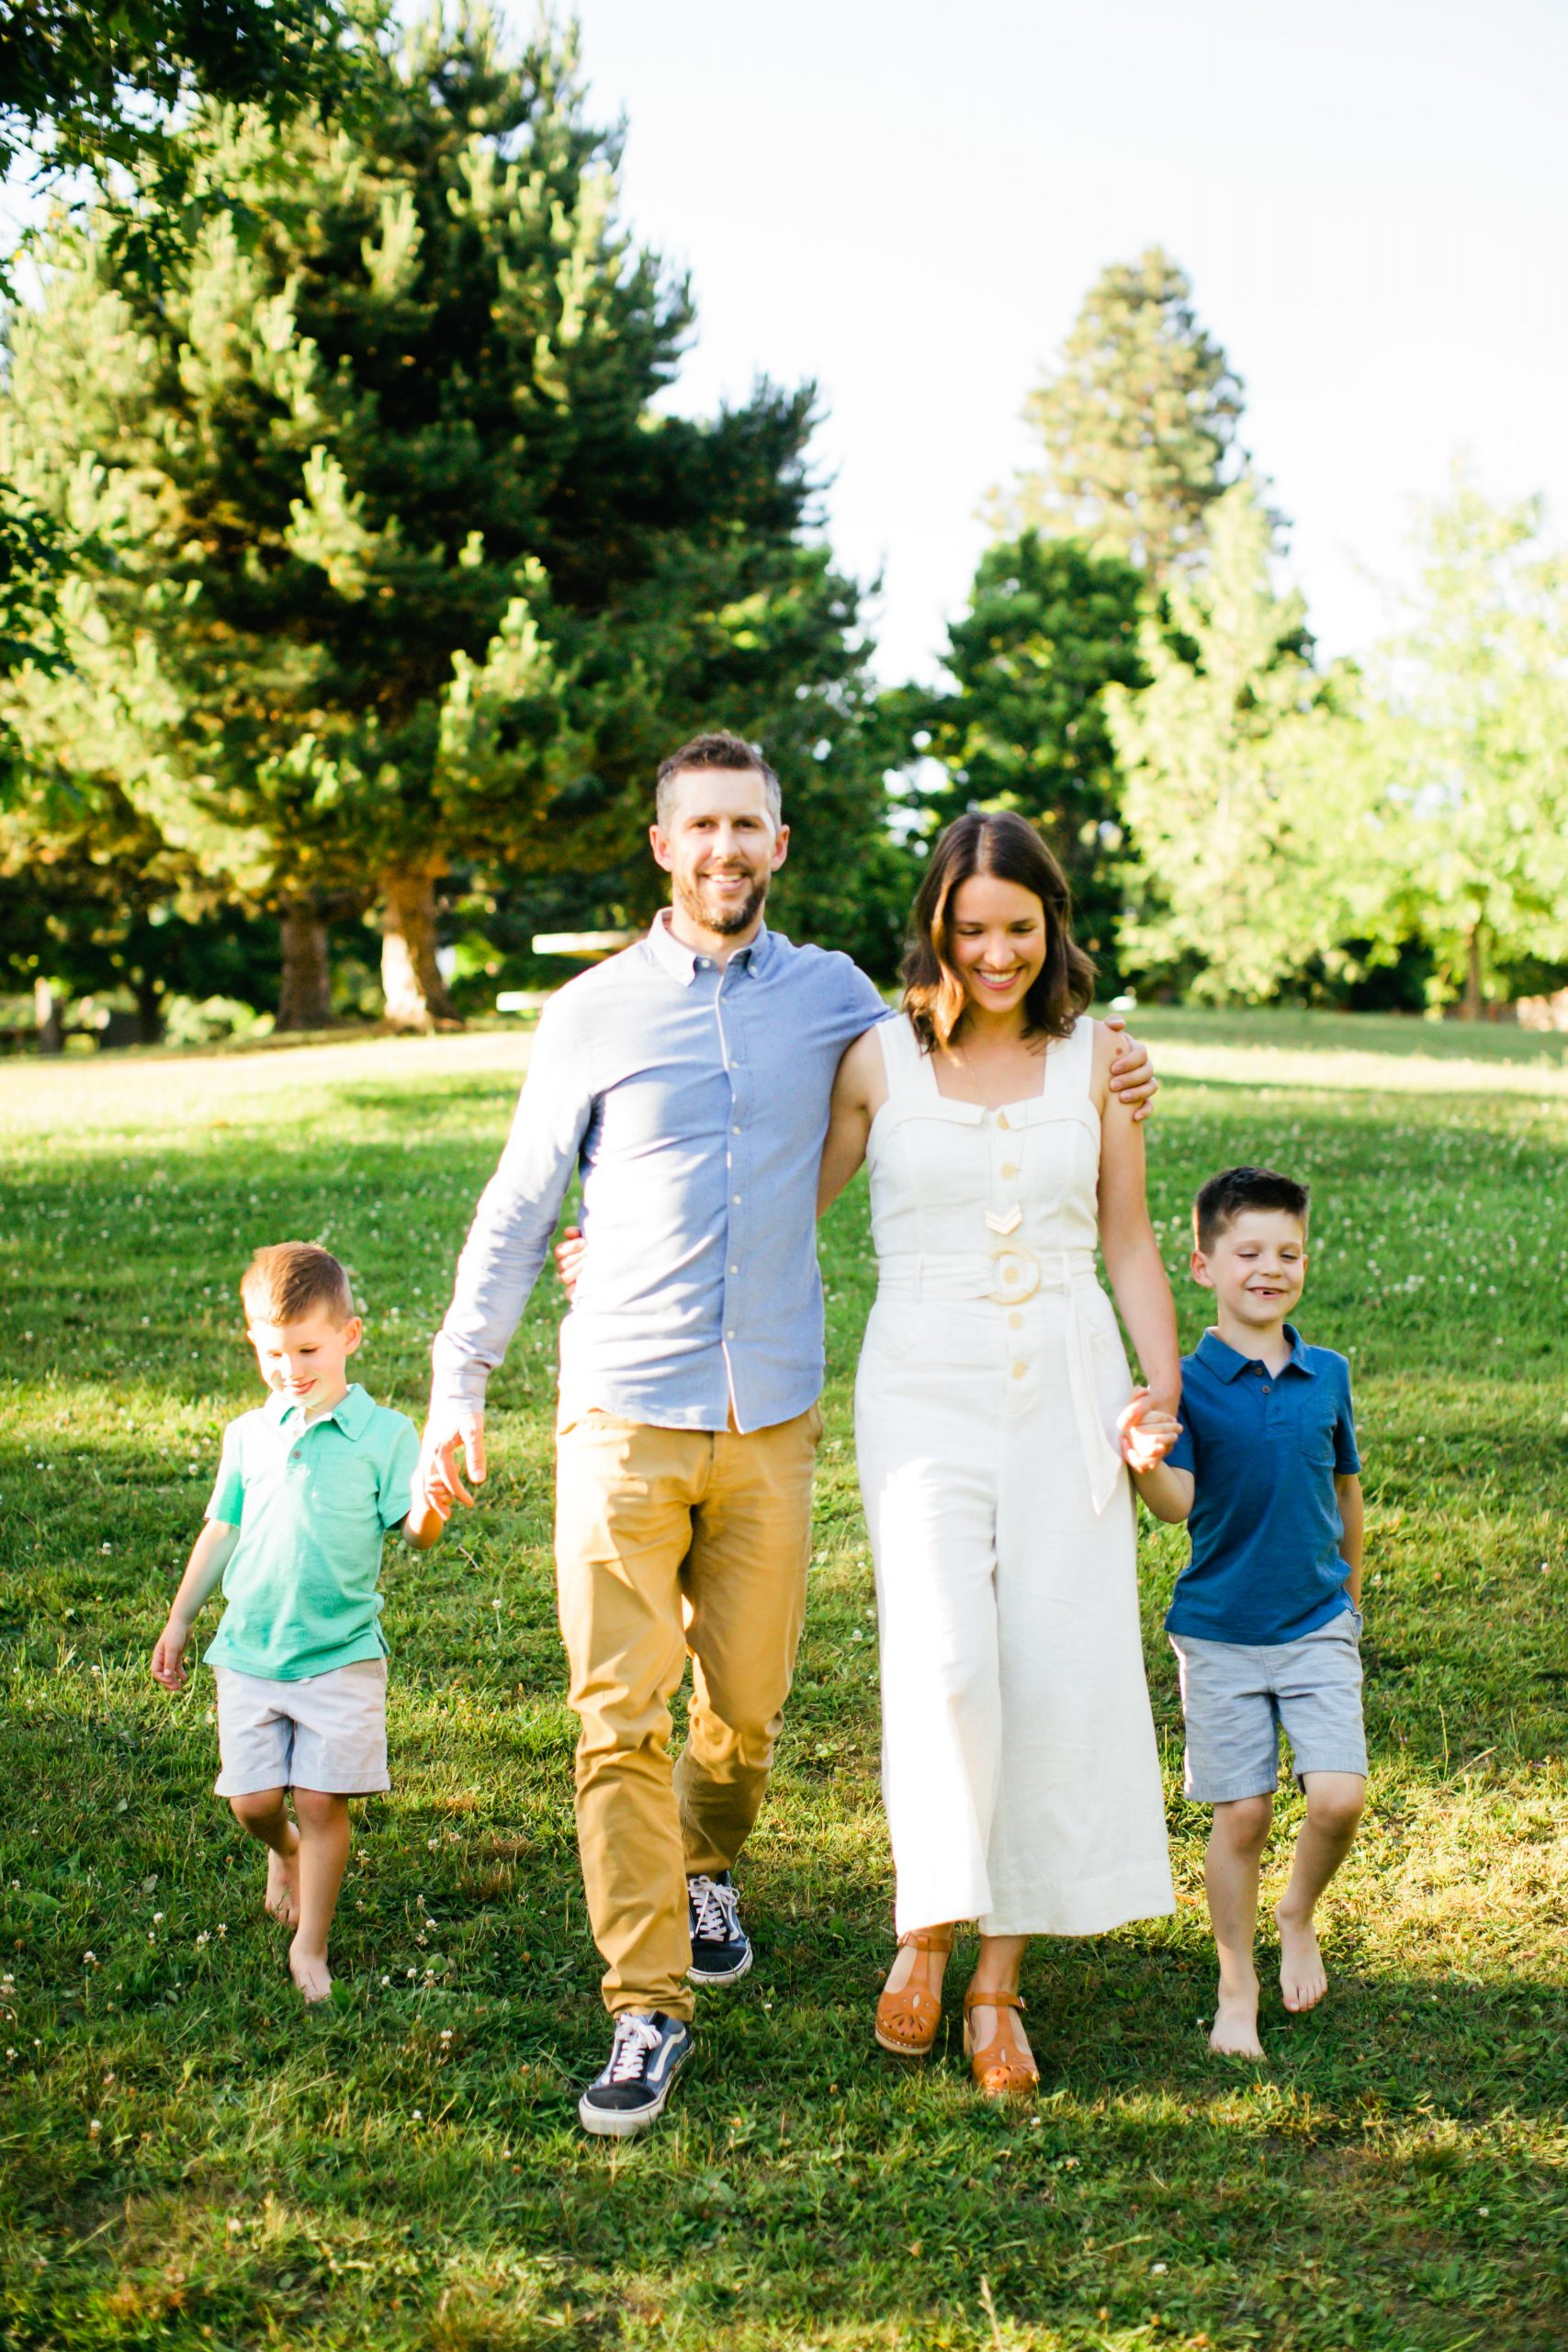 Seattle home organizer, Lauren Fink Shea, with her family